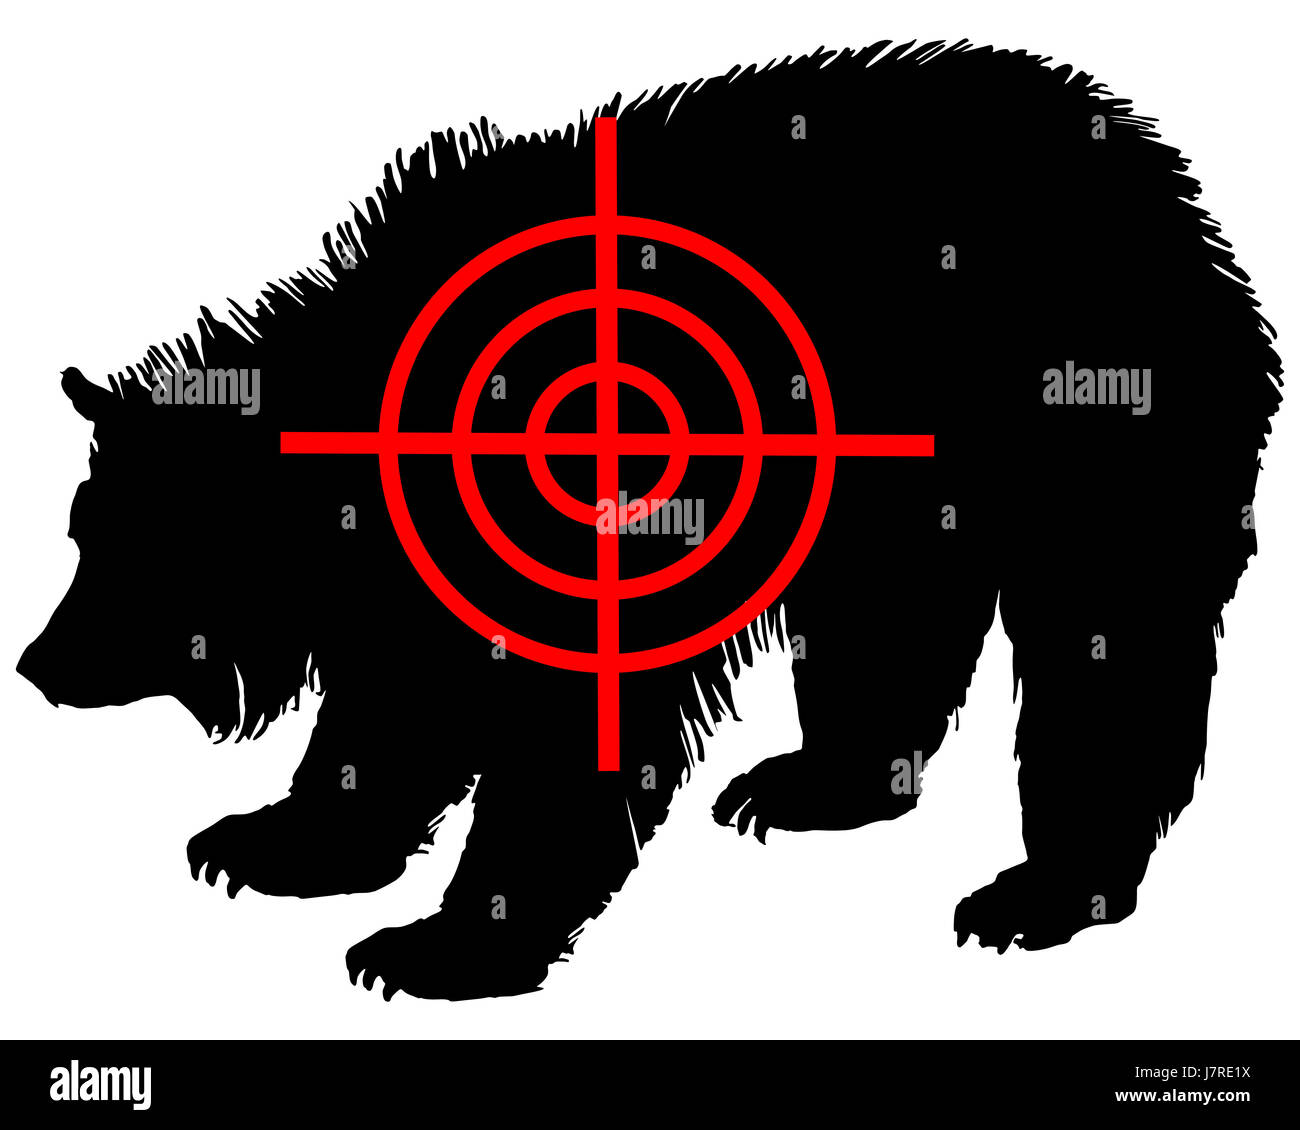 sign signal animal mammal bear black swarthy jetblack deep black illustration Stock Photo